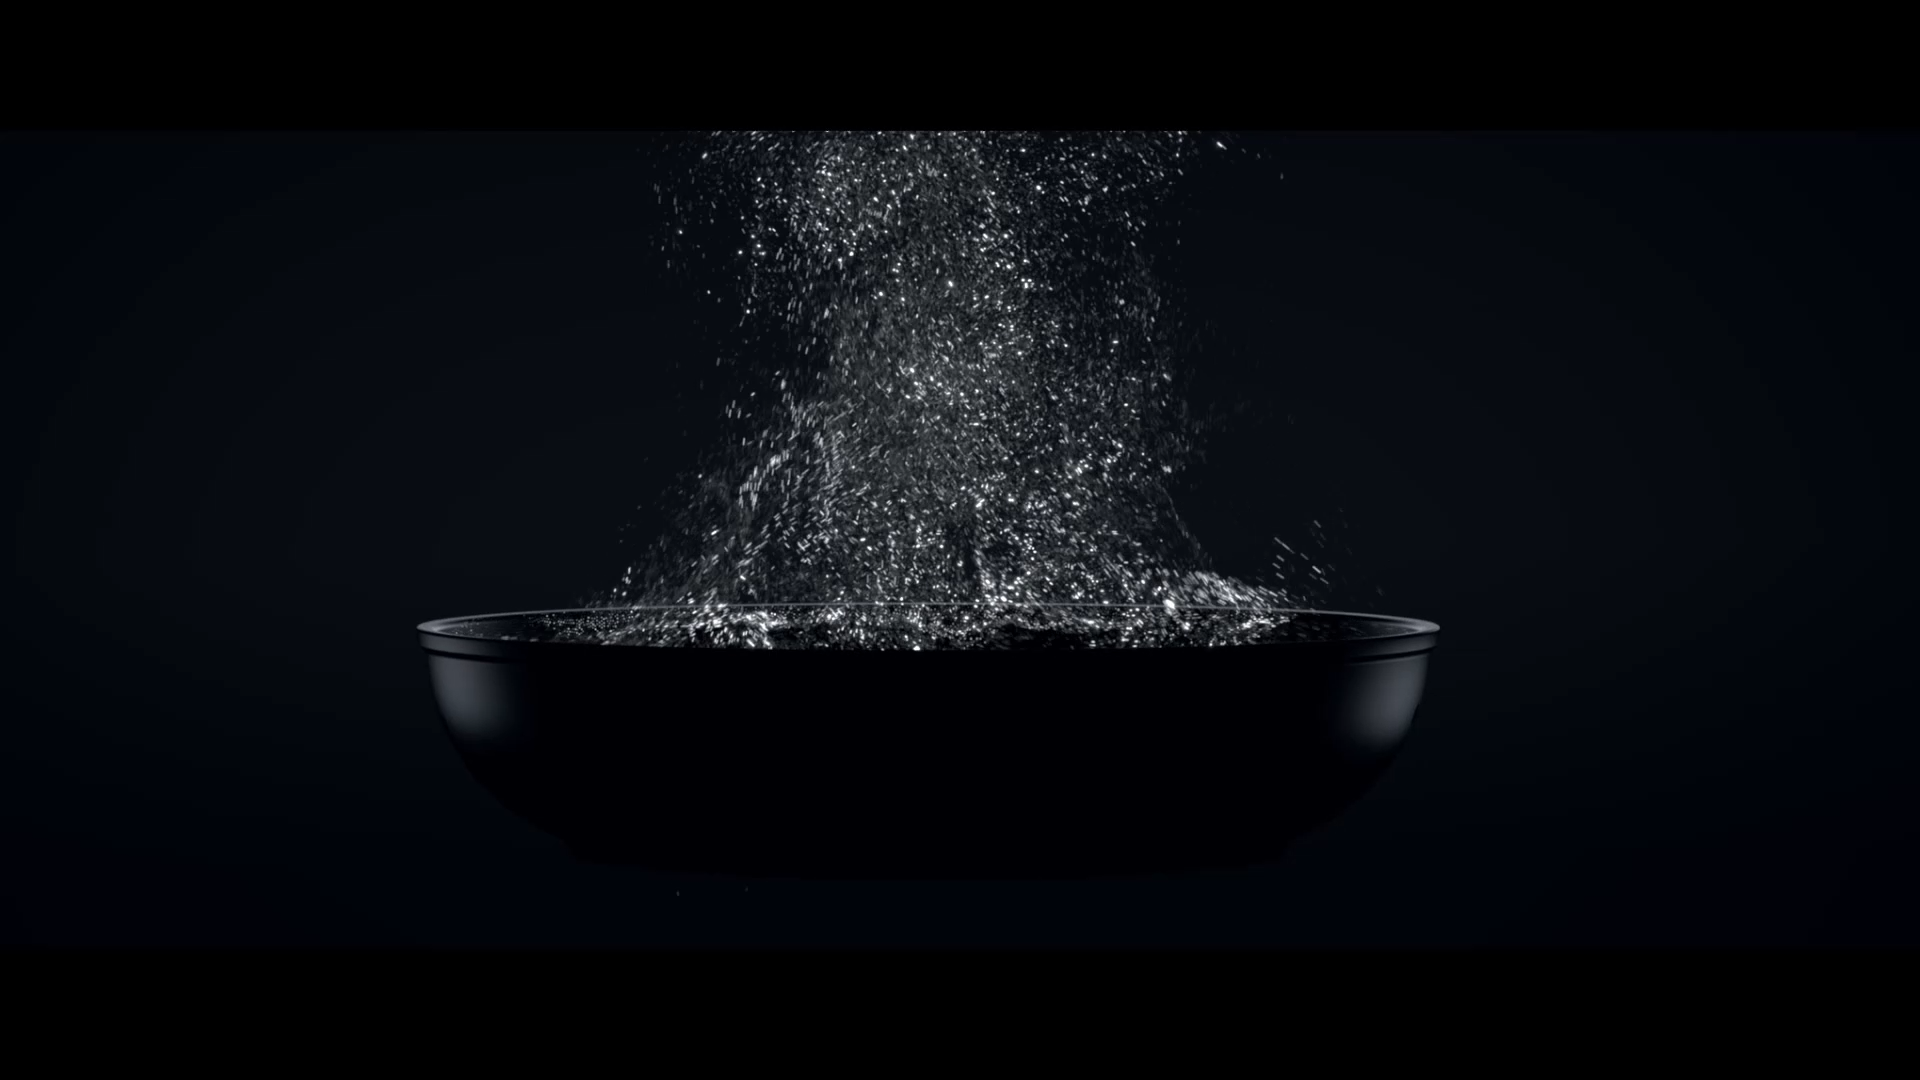 Le Creuset Launches Immersive 'The Future of Cooking' Spot